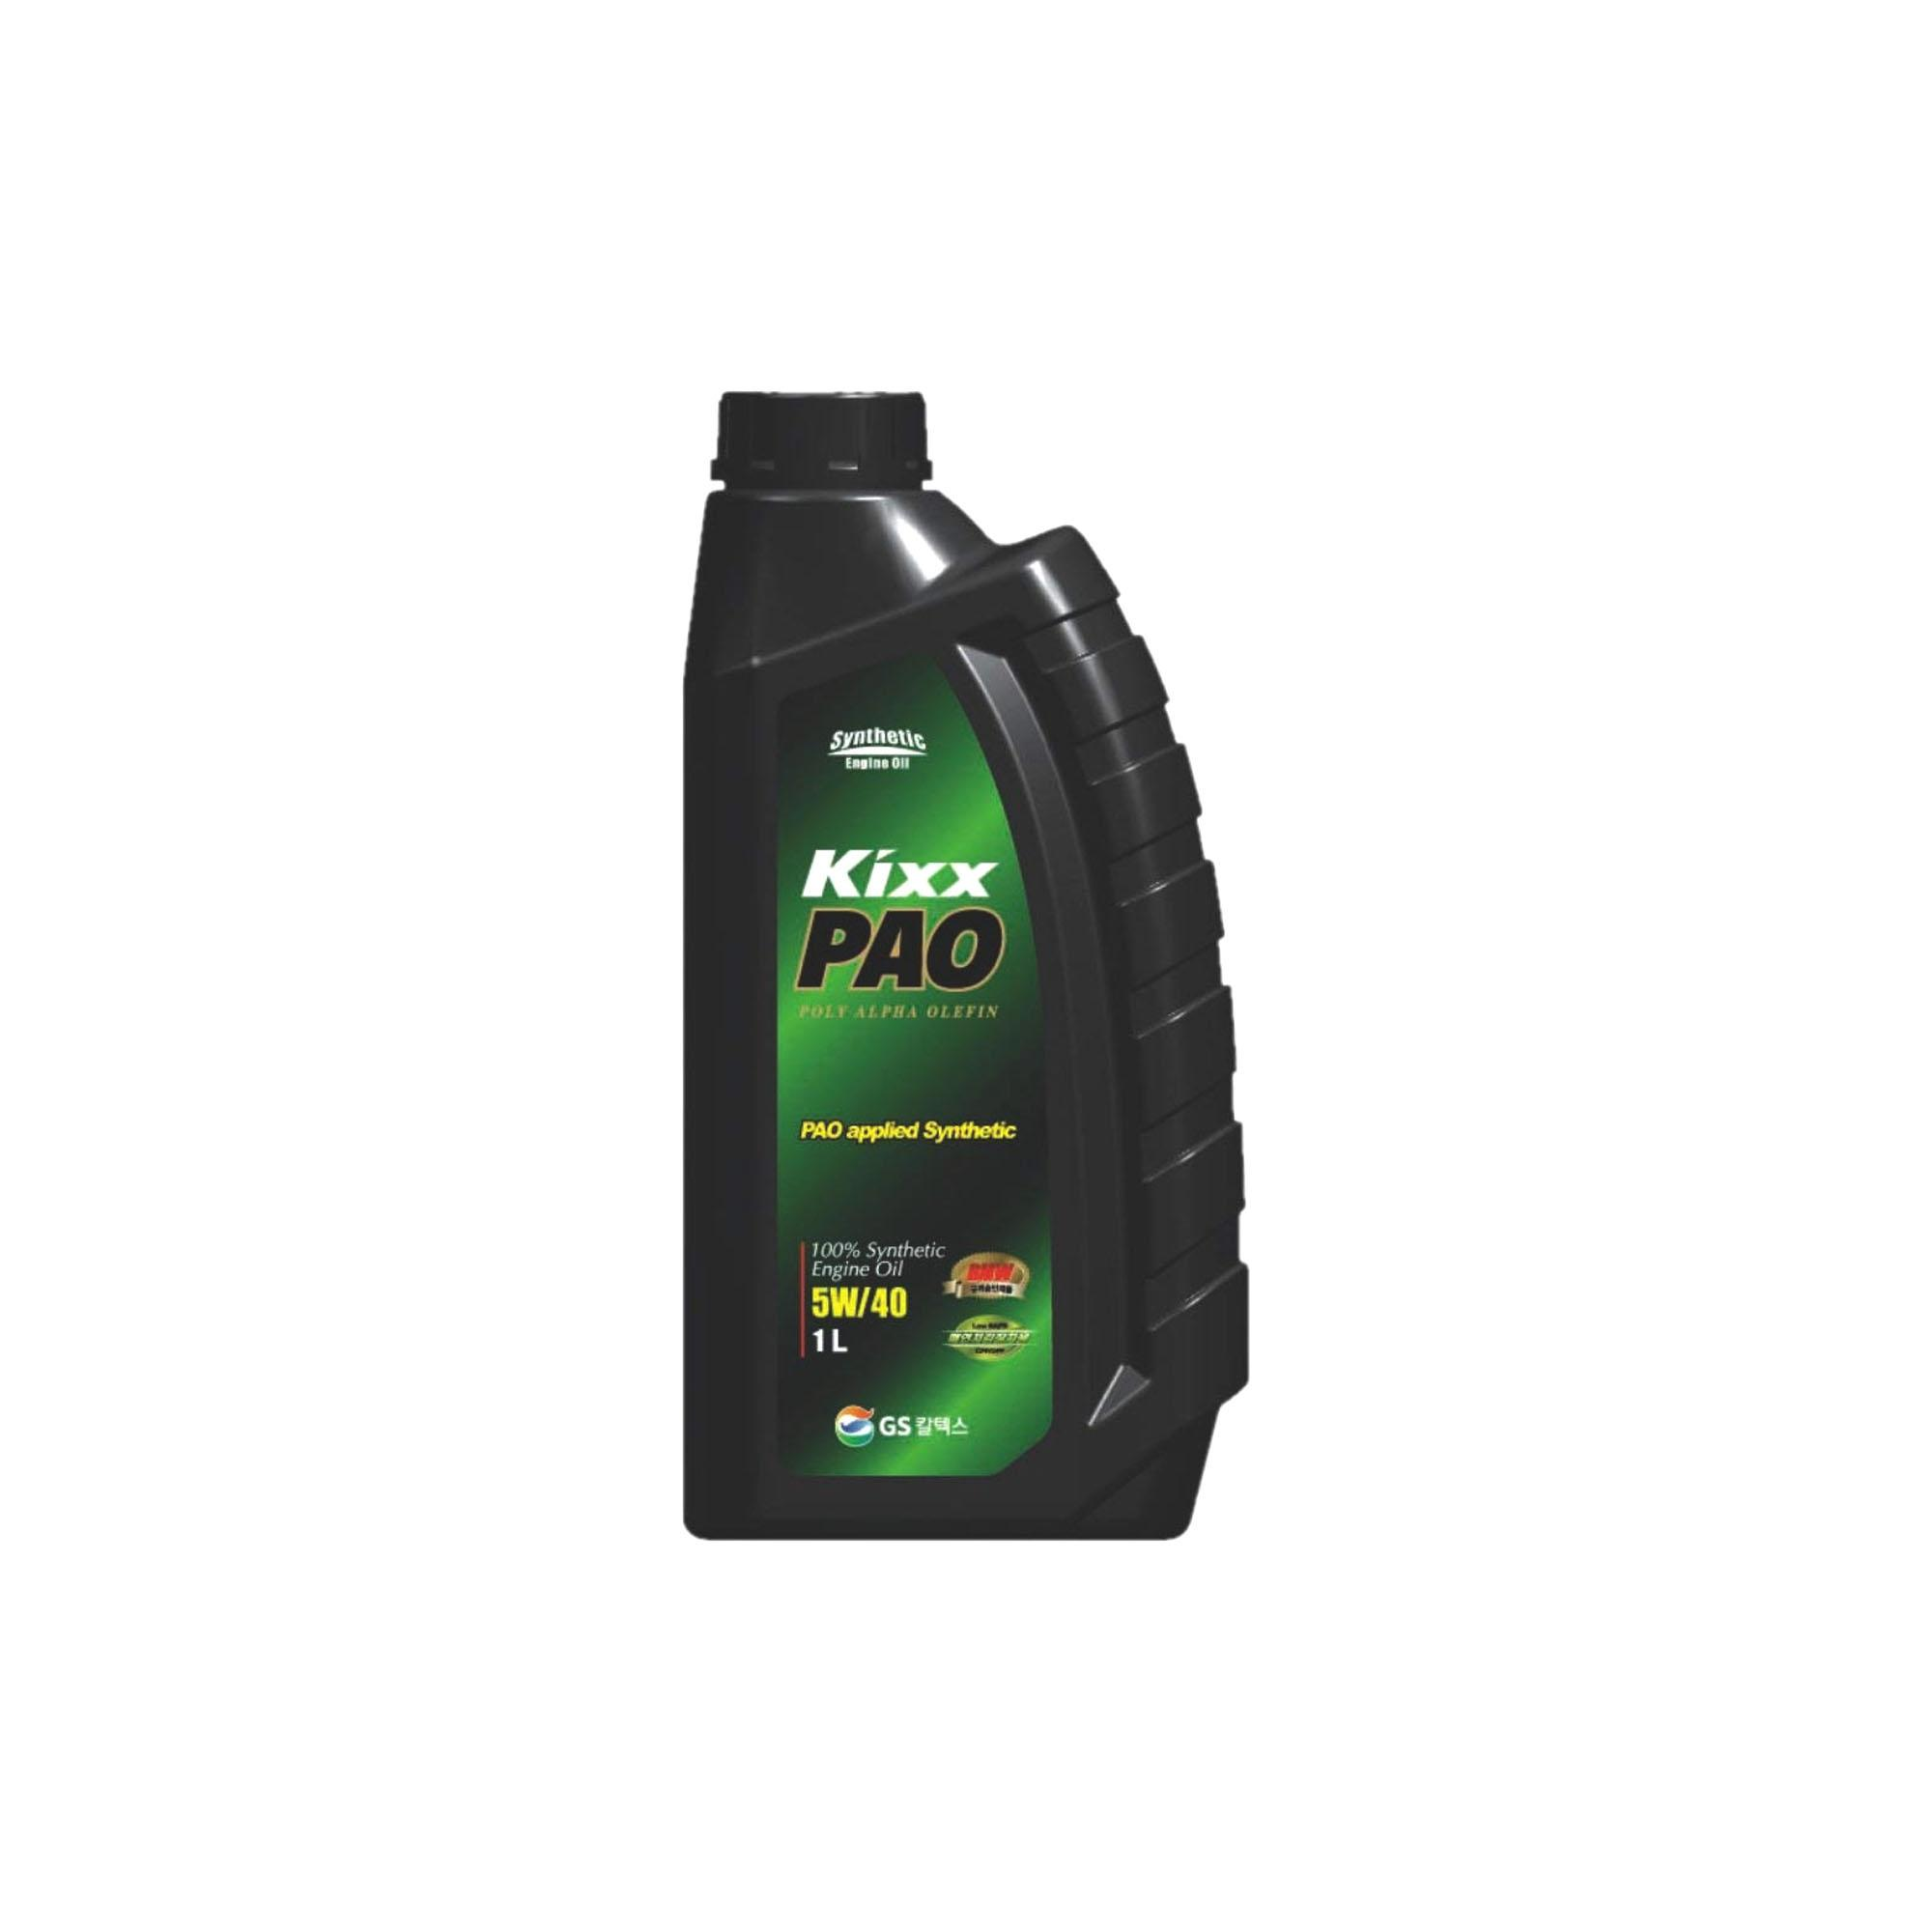 Kixx (oil): customer reviews, types and features 95